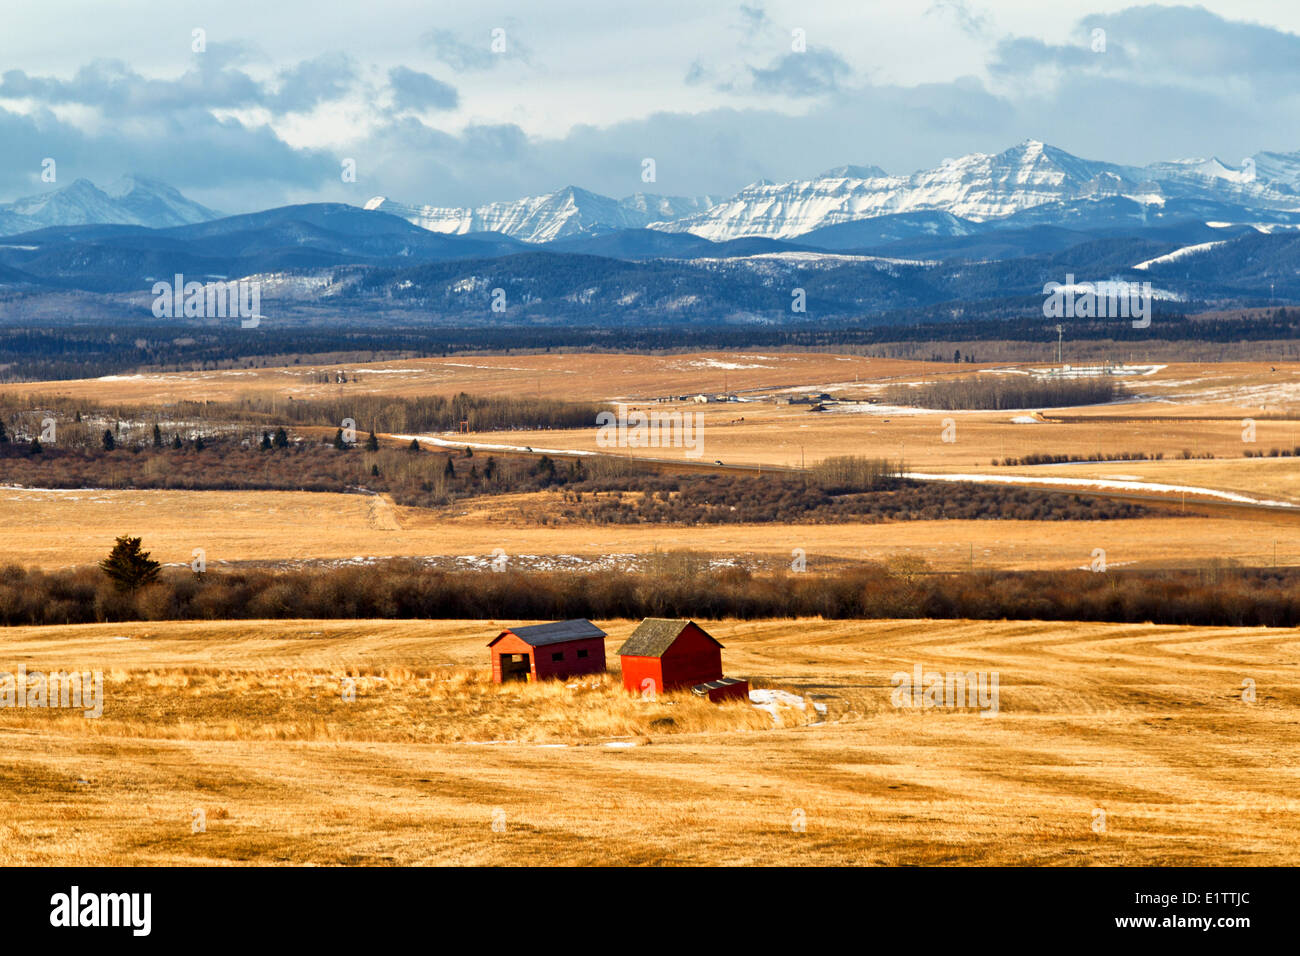 Barns with Rocky Mountains in background, Jumping Ground Road, Alberta, Canada - Stock Image